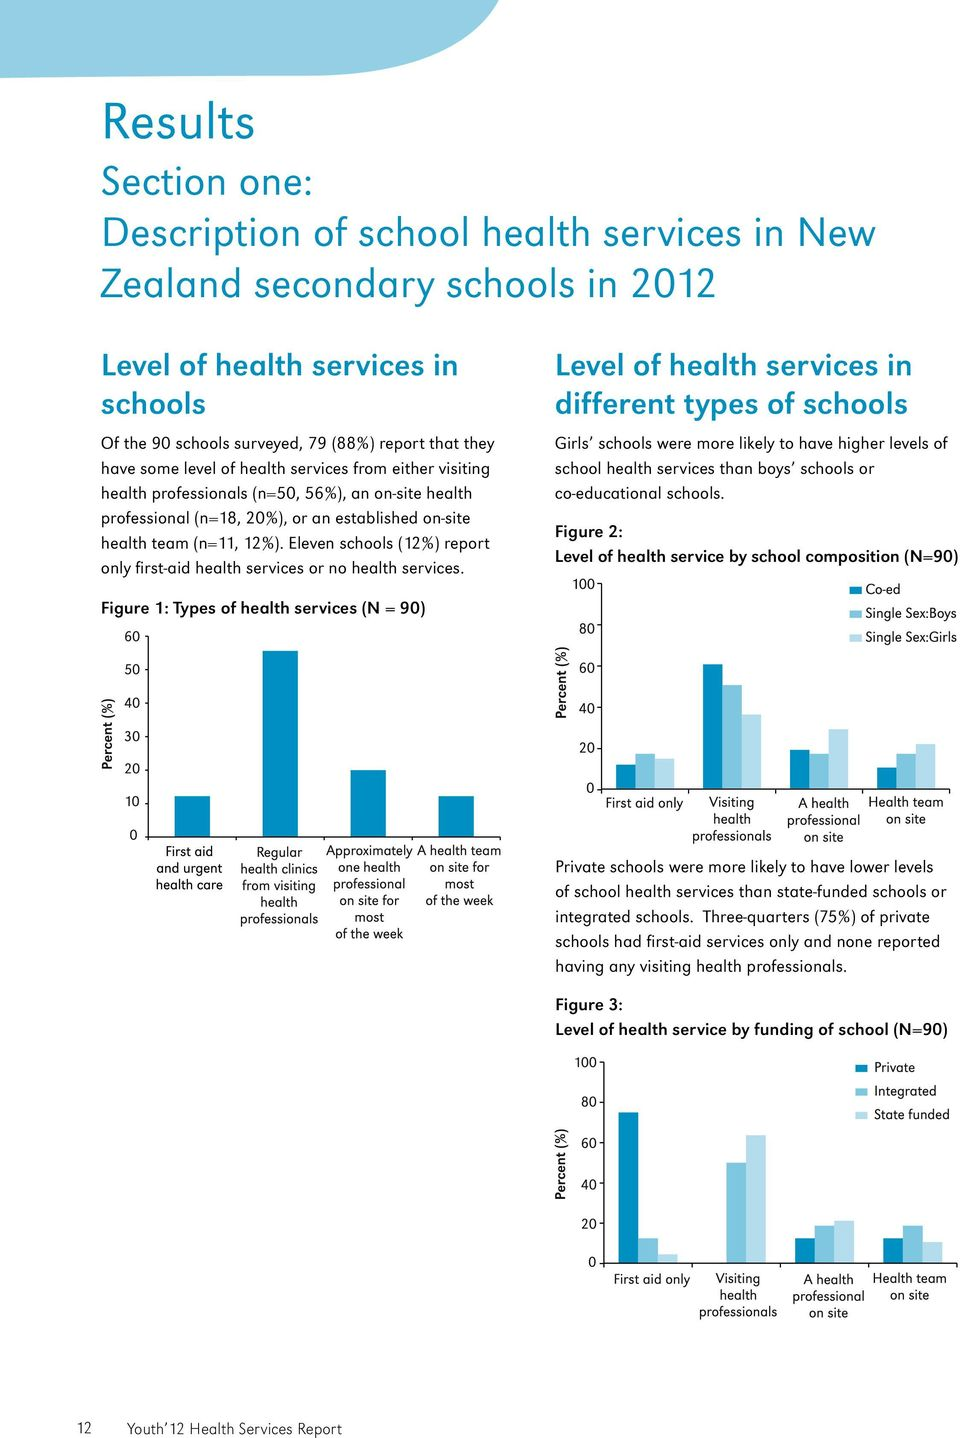 Eleven schools (12%) report only first-aid health services or no health services.